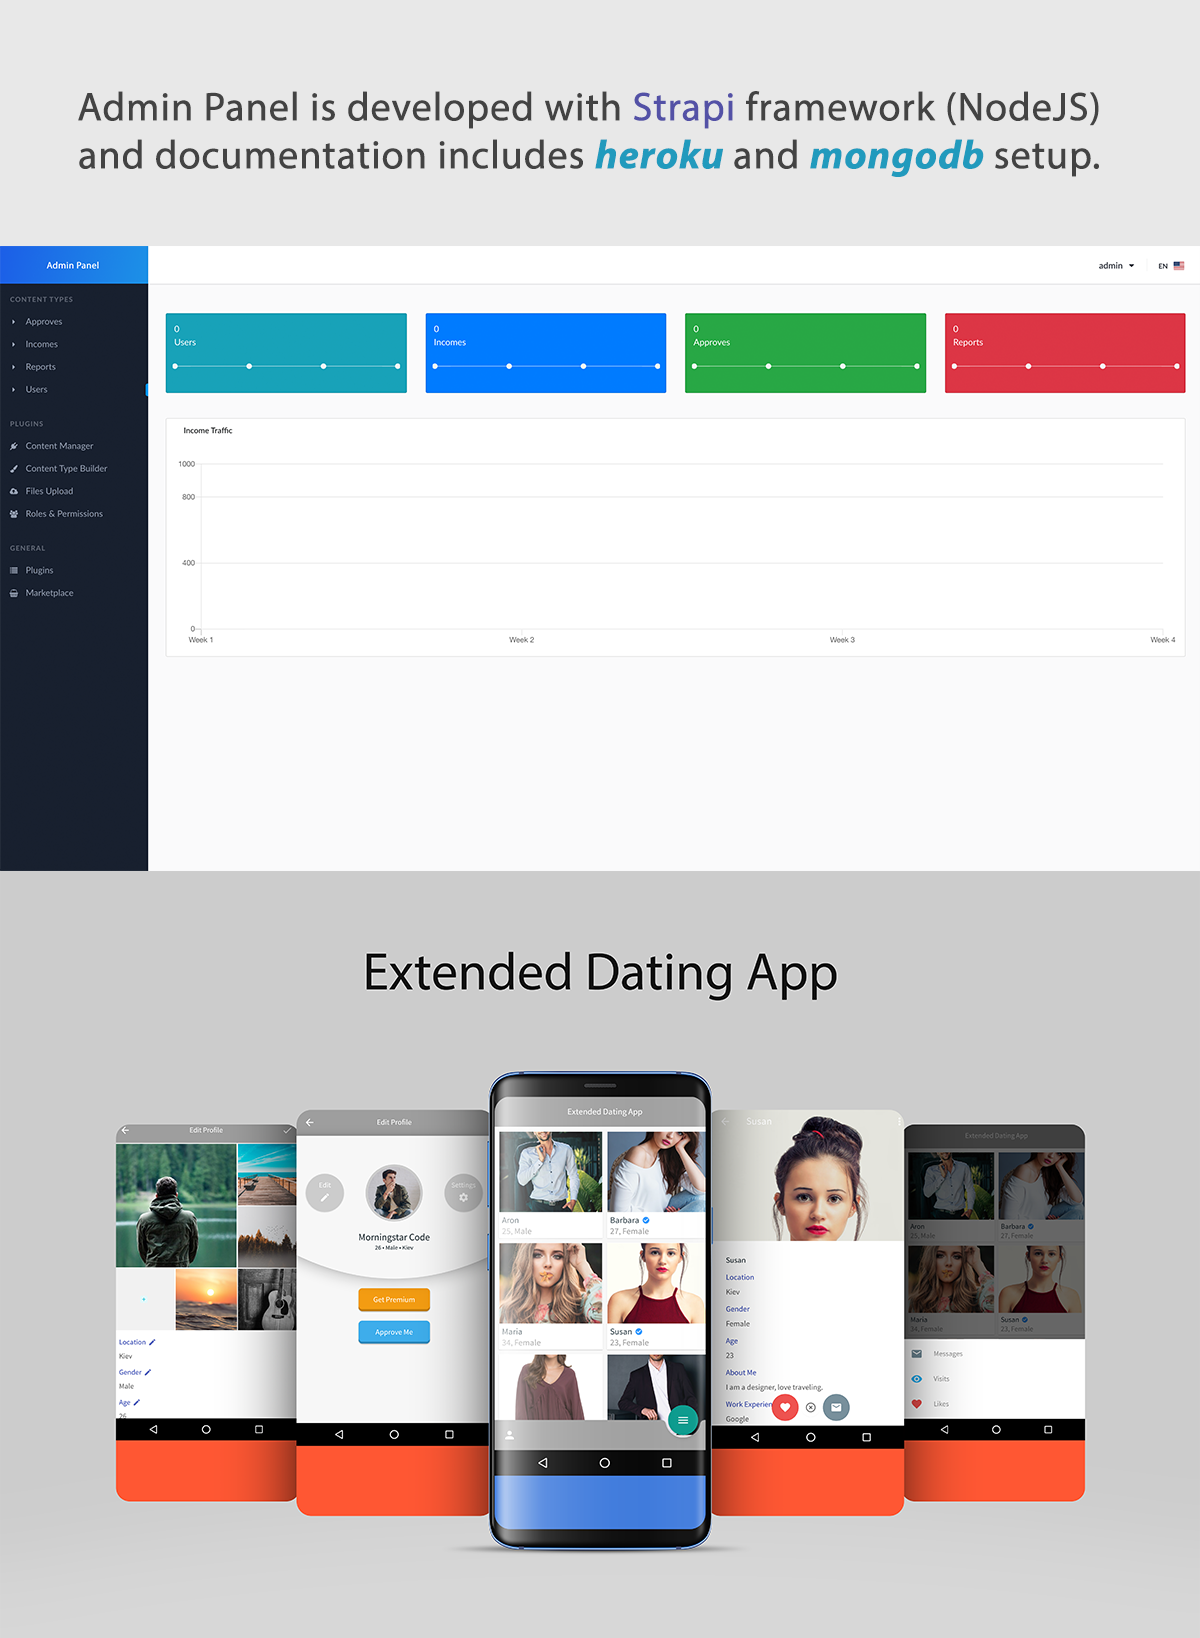 Extended Dating App